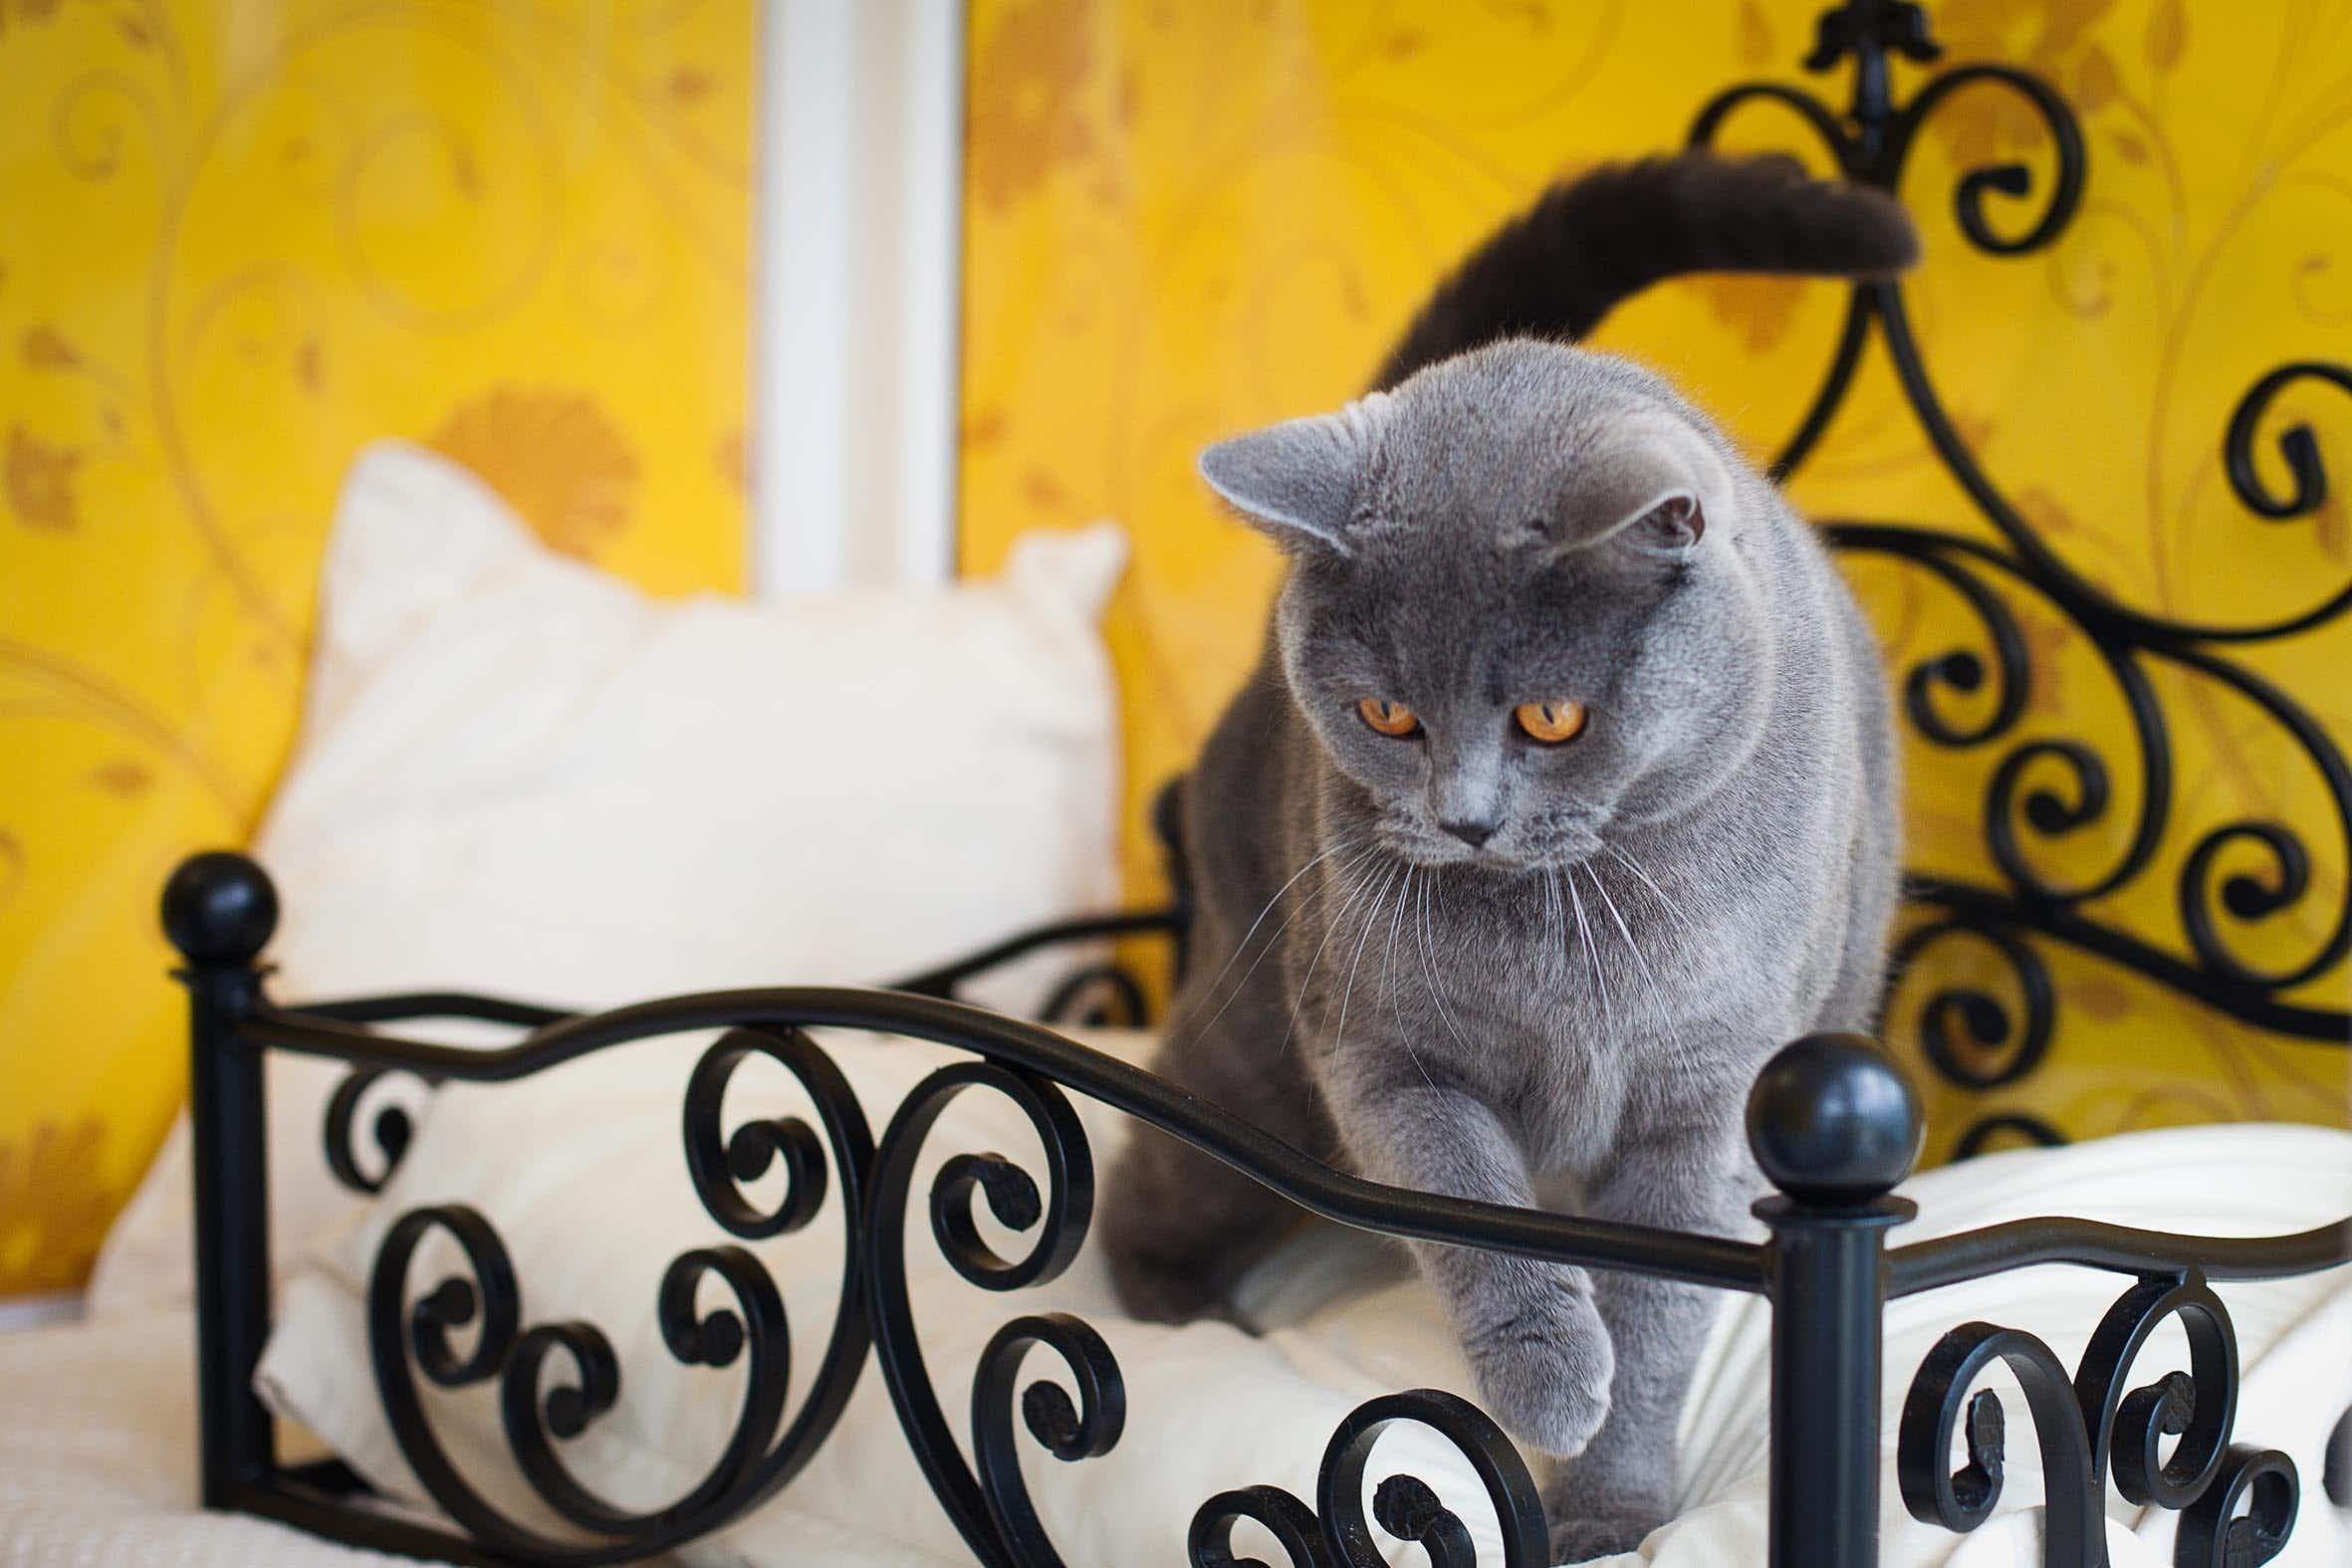 Individual suites and spa days - inside London's newest luxury hotel...for cats